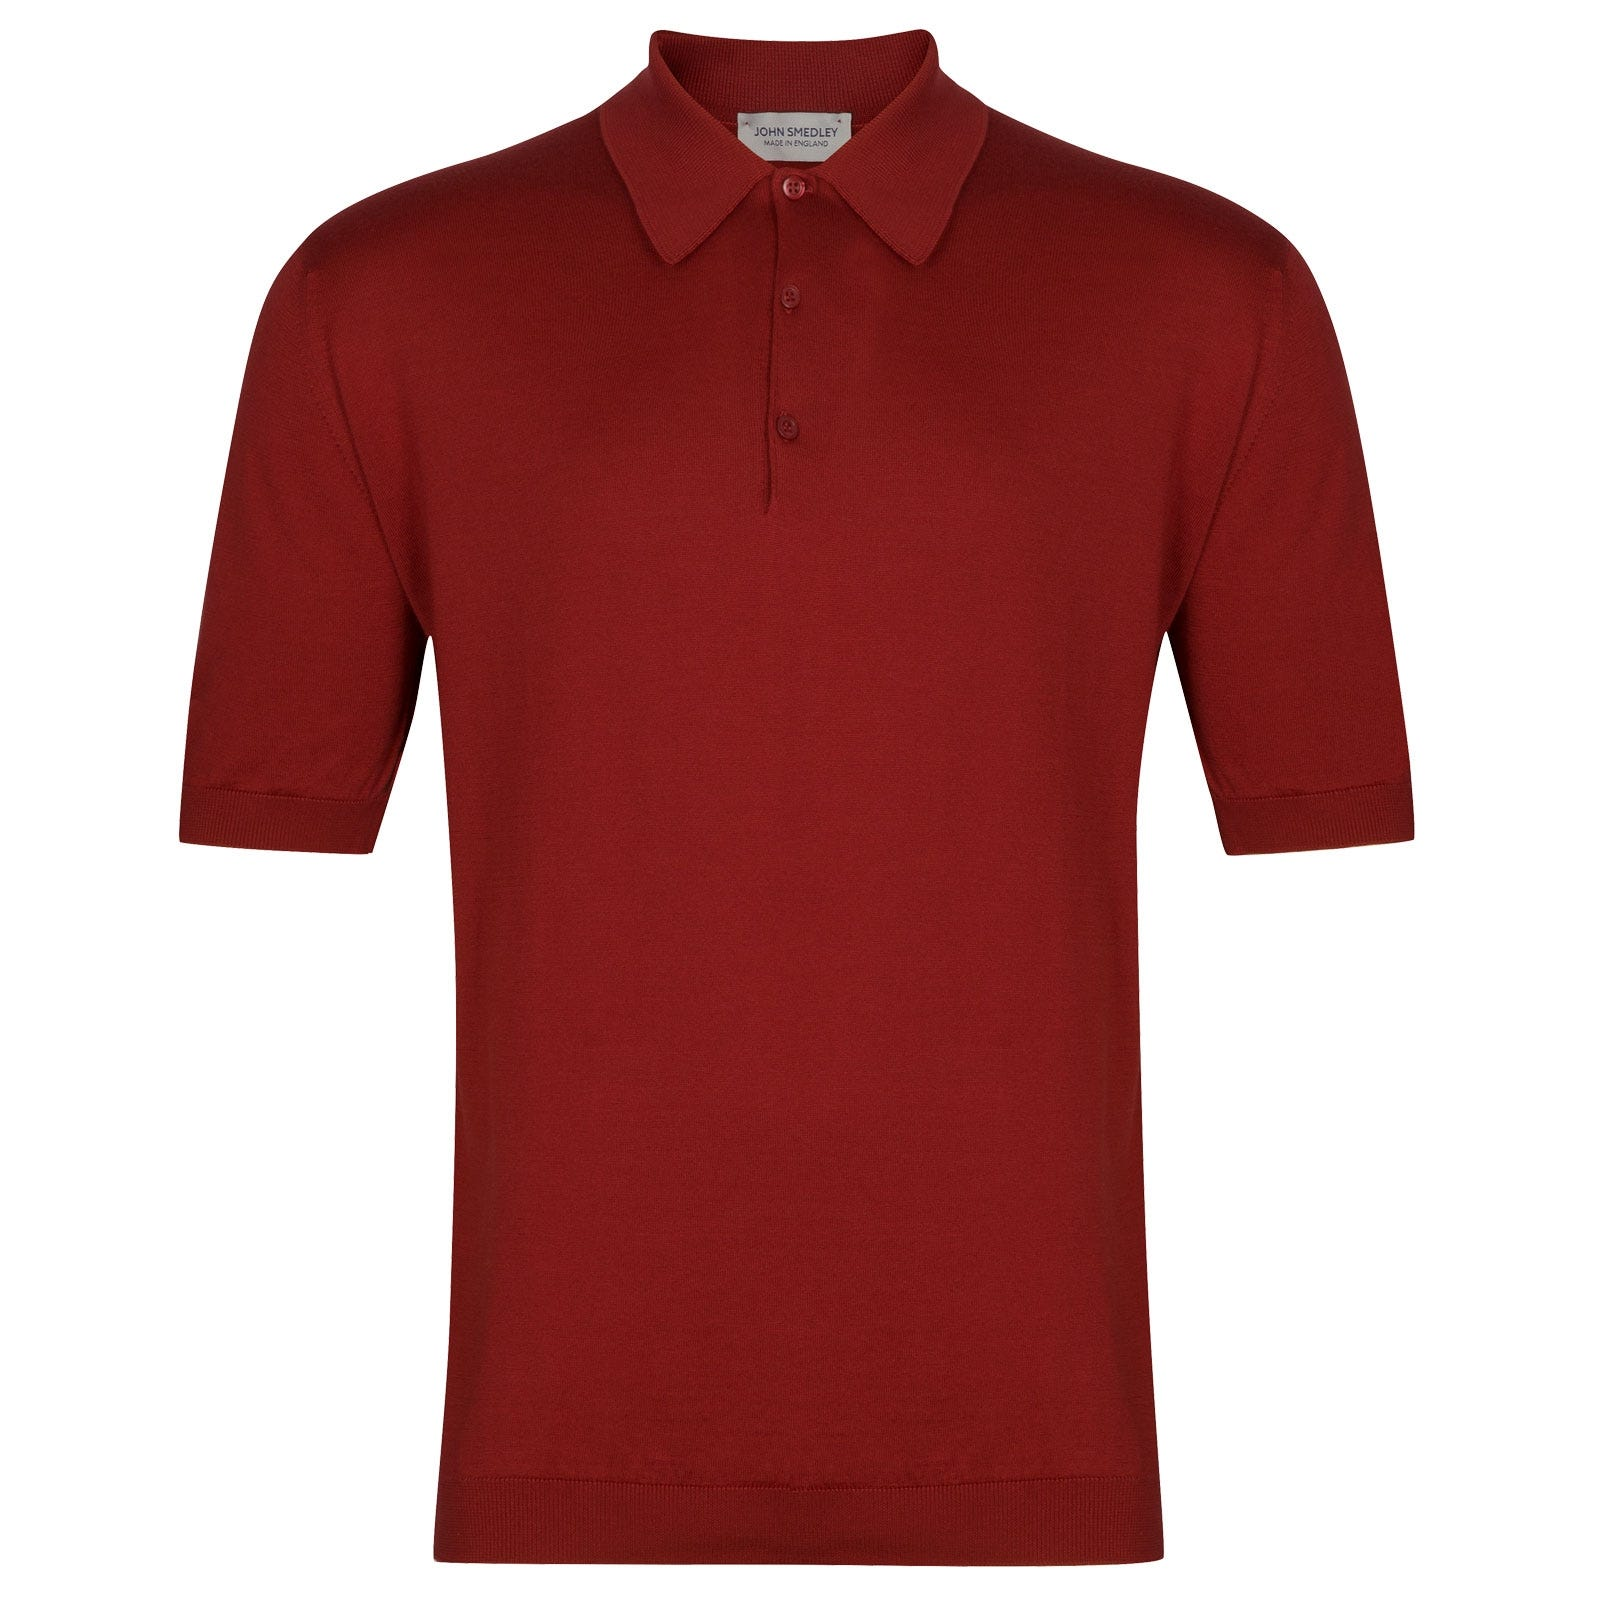 John Smedley Isis in Anther Red Shirt-XSM